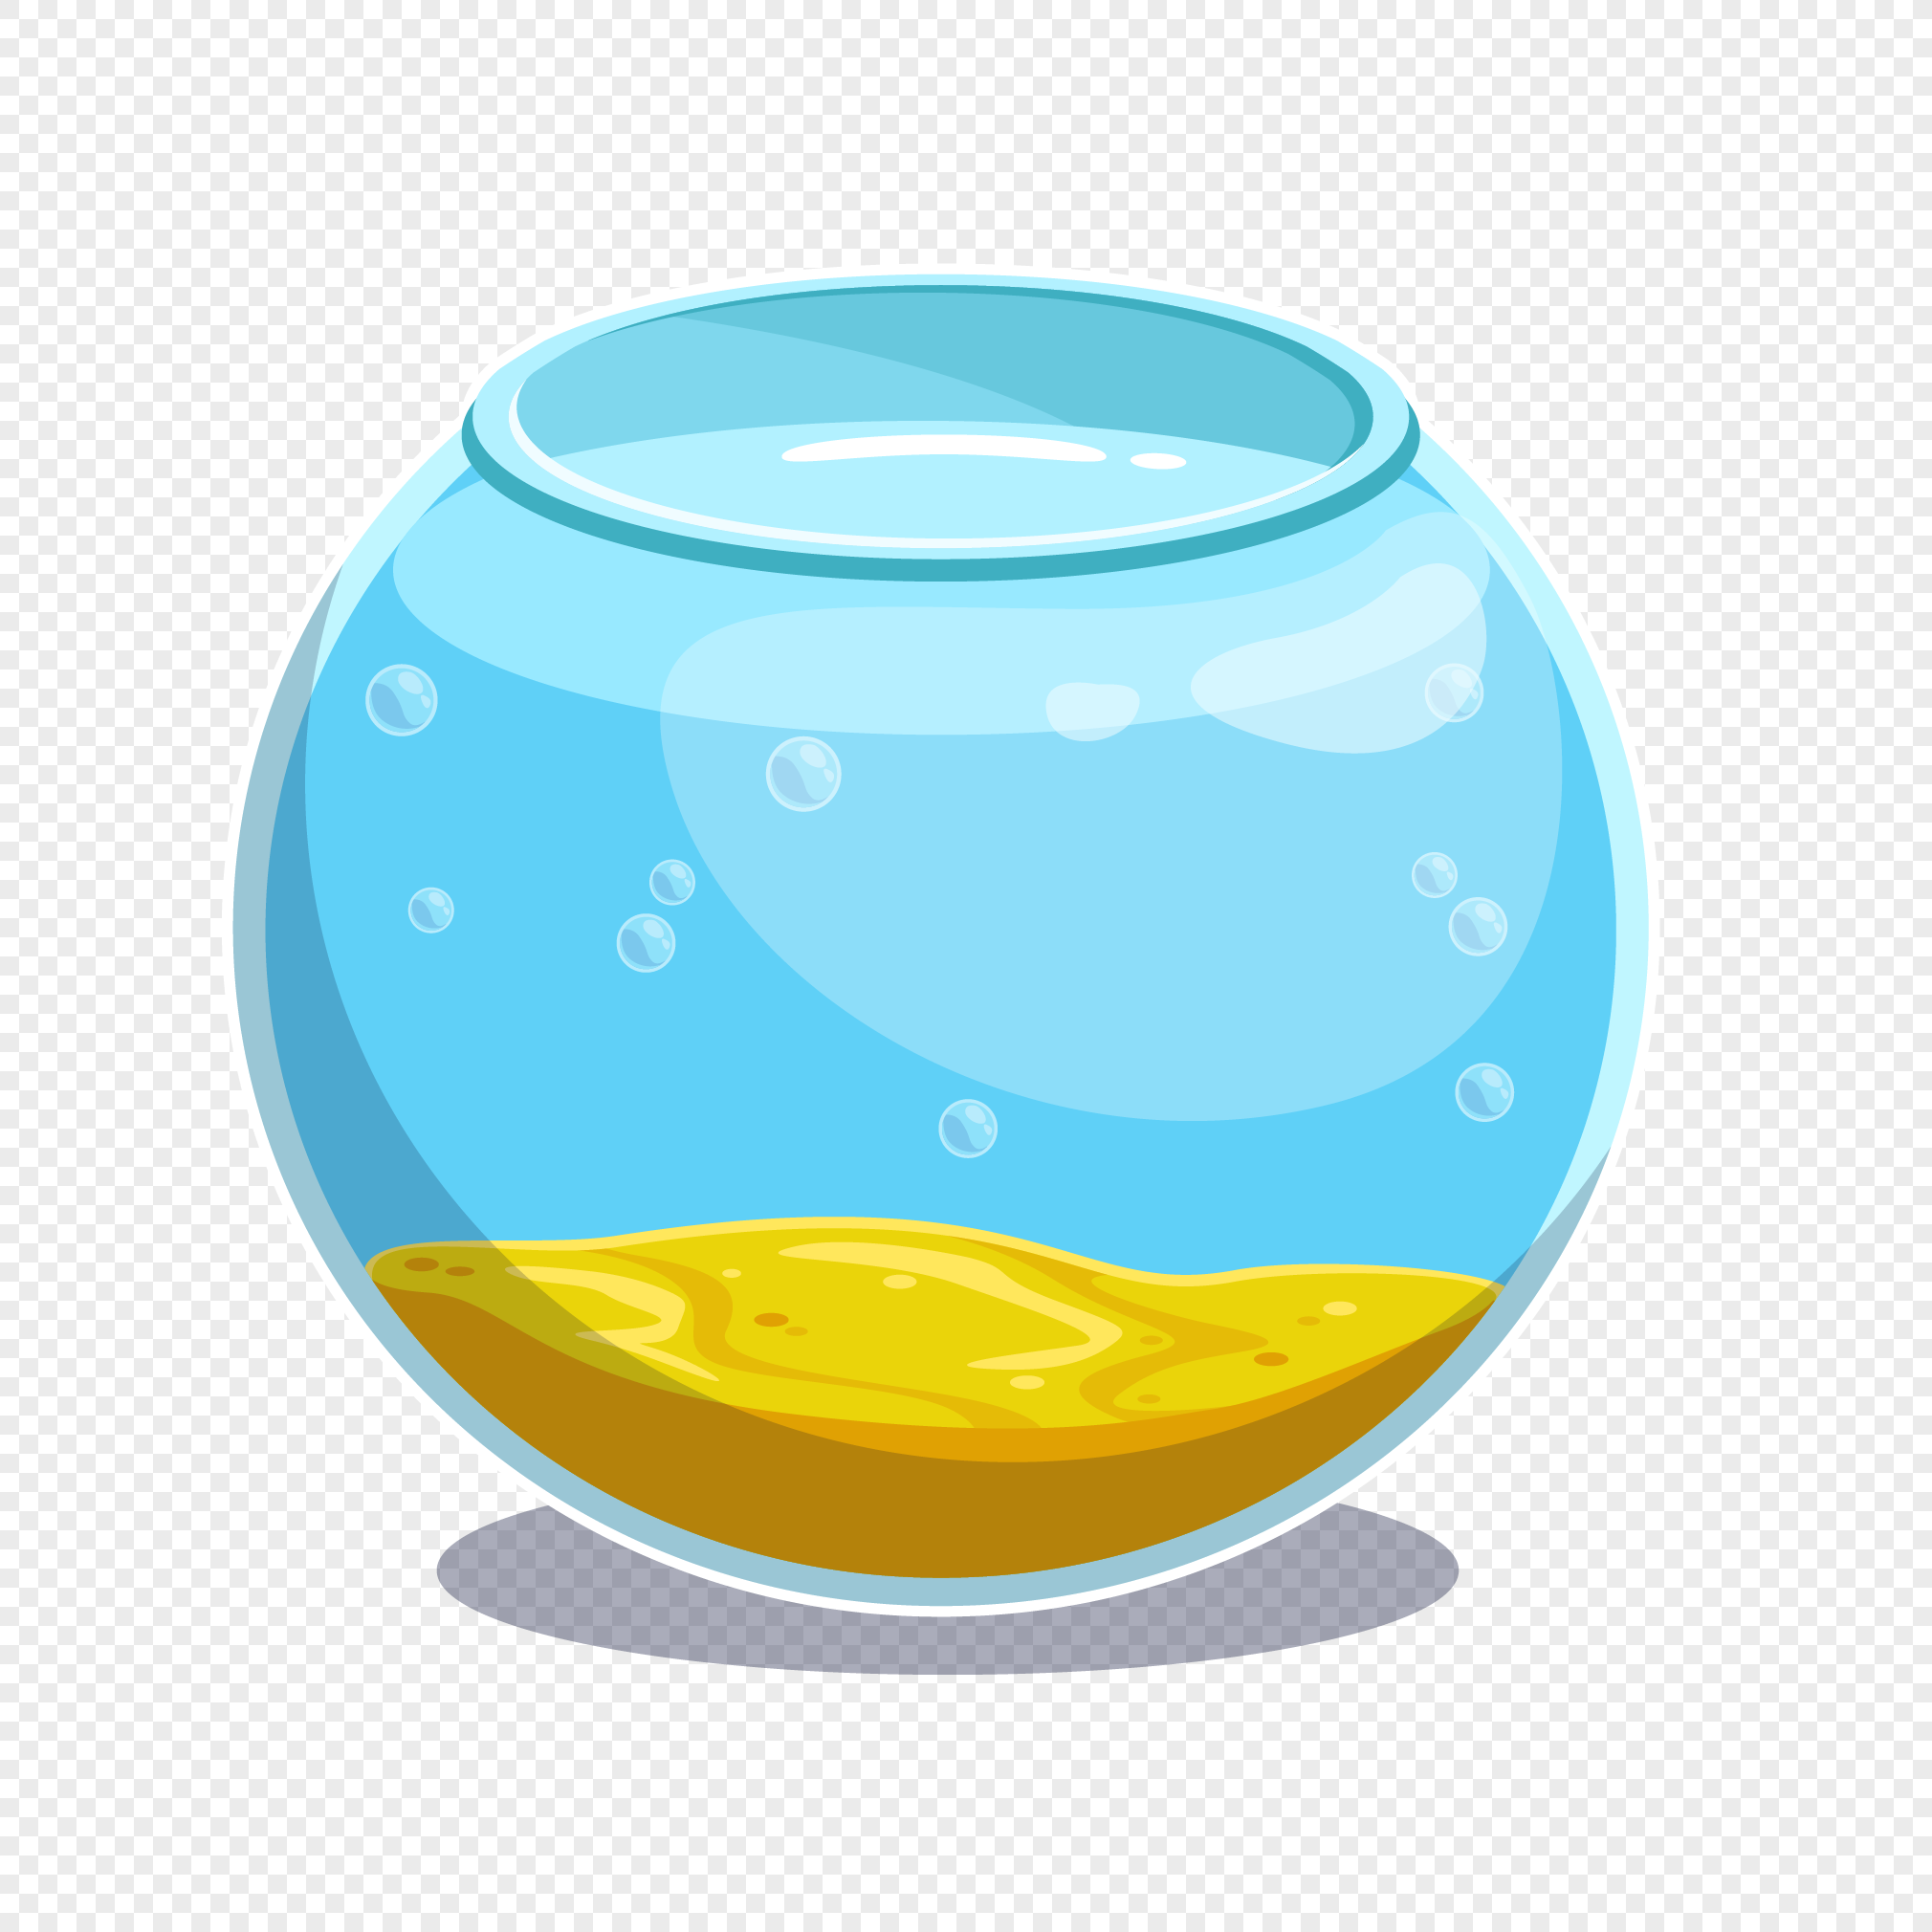 Fish Tank Png Image Picture Free Download 400840378 Lovepik Com